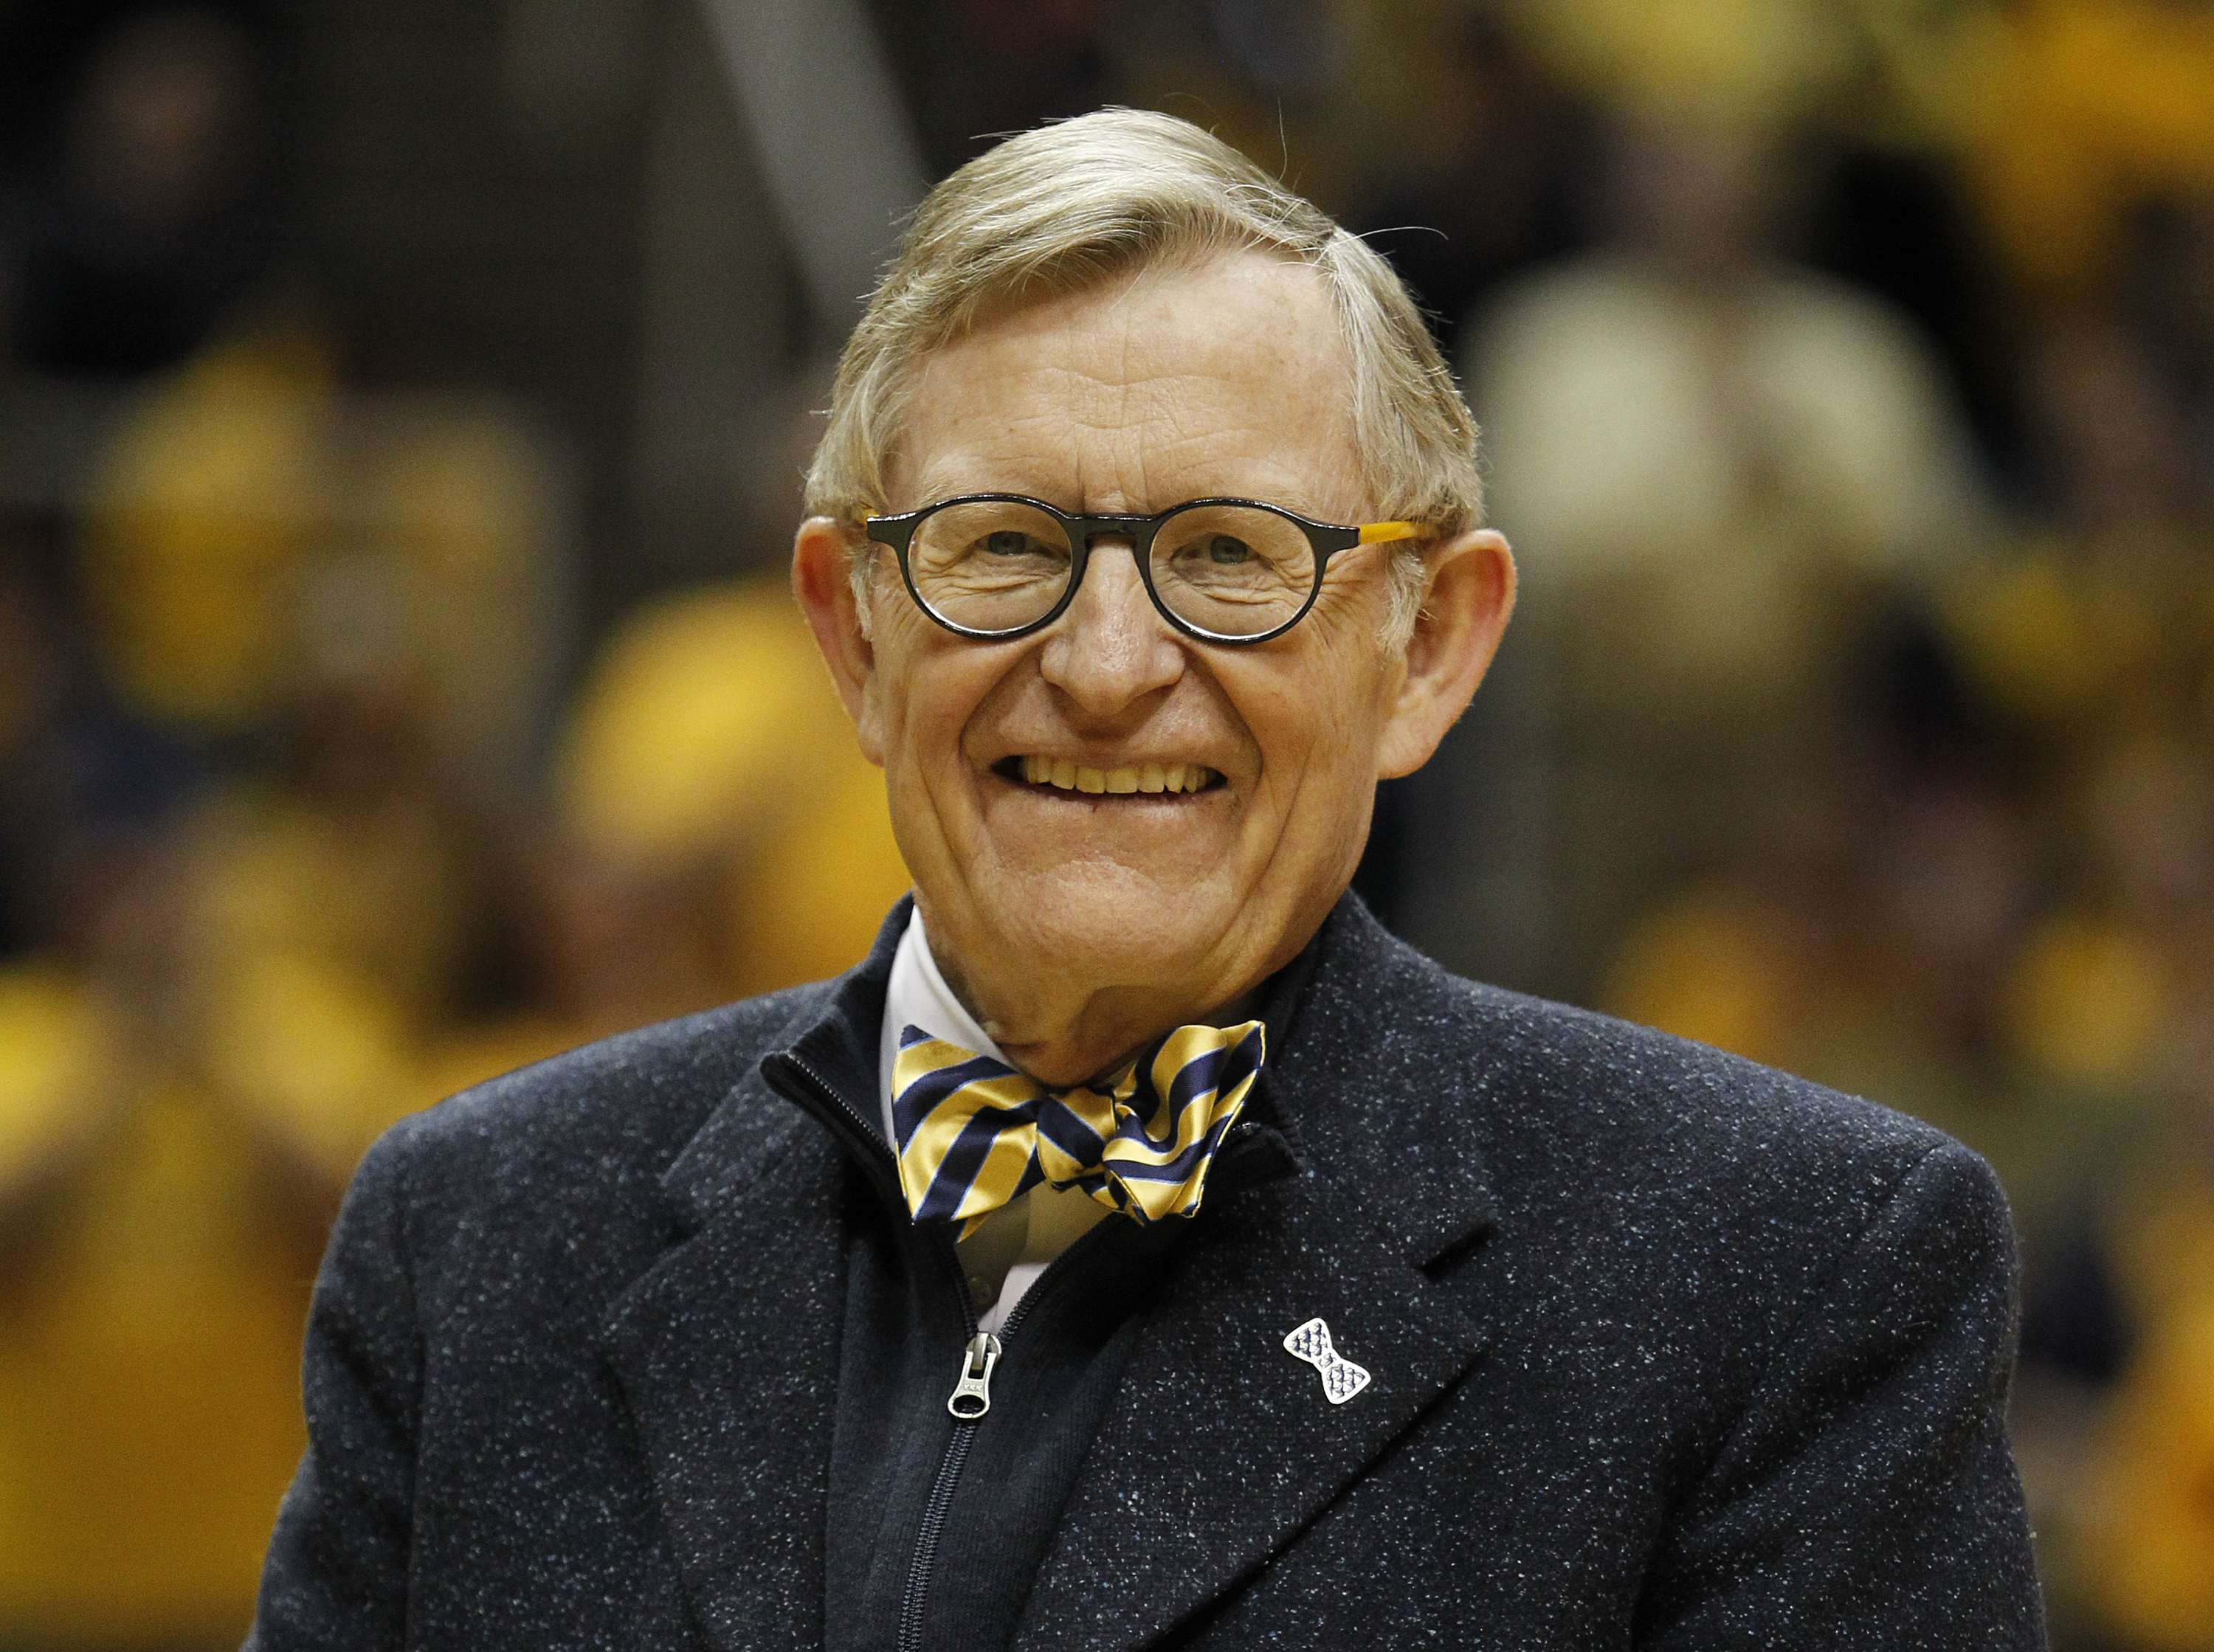 President E. Gordon Gee of the West Virginia Mountaineers at the game against the Iowa State Cyclones at the WVU Coliseum in Morgantown, W.V. on Jan. 10, 2015.